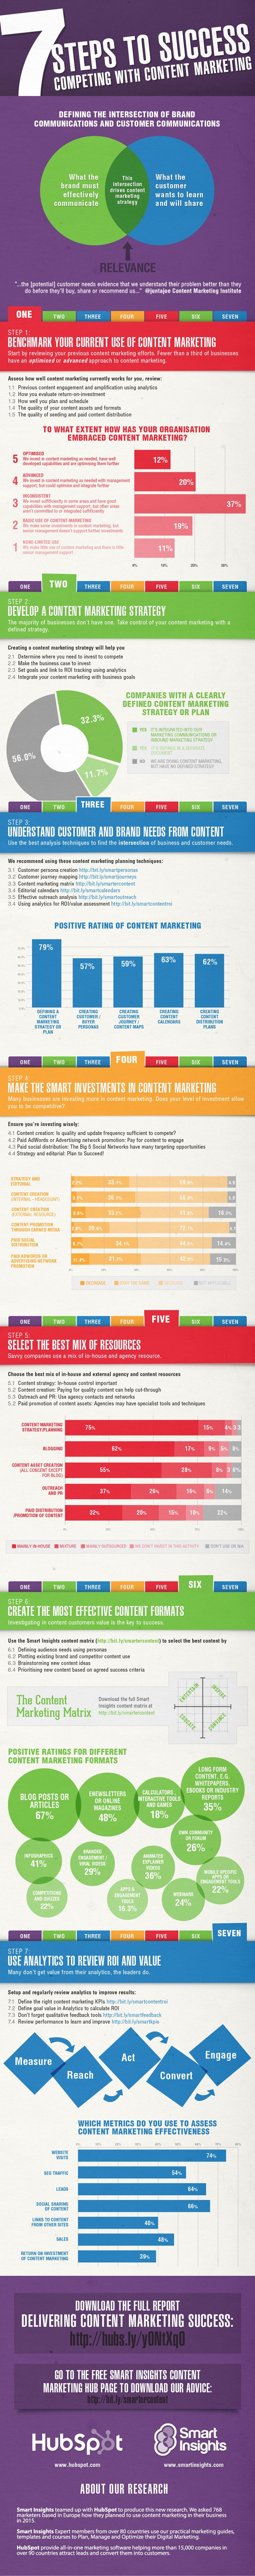 We All Know Content Marketing Is Important, But How Well Are Businesses Managing It?